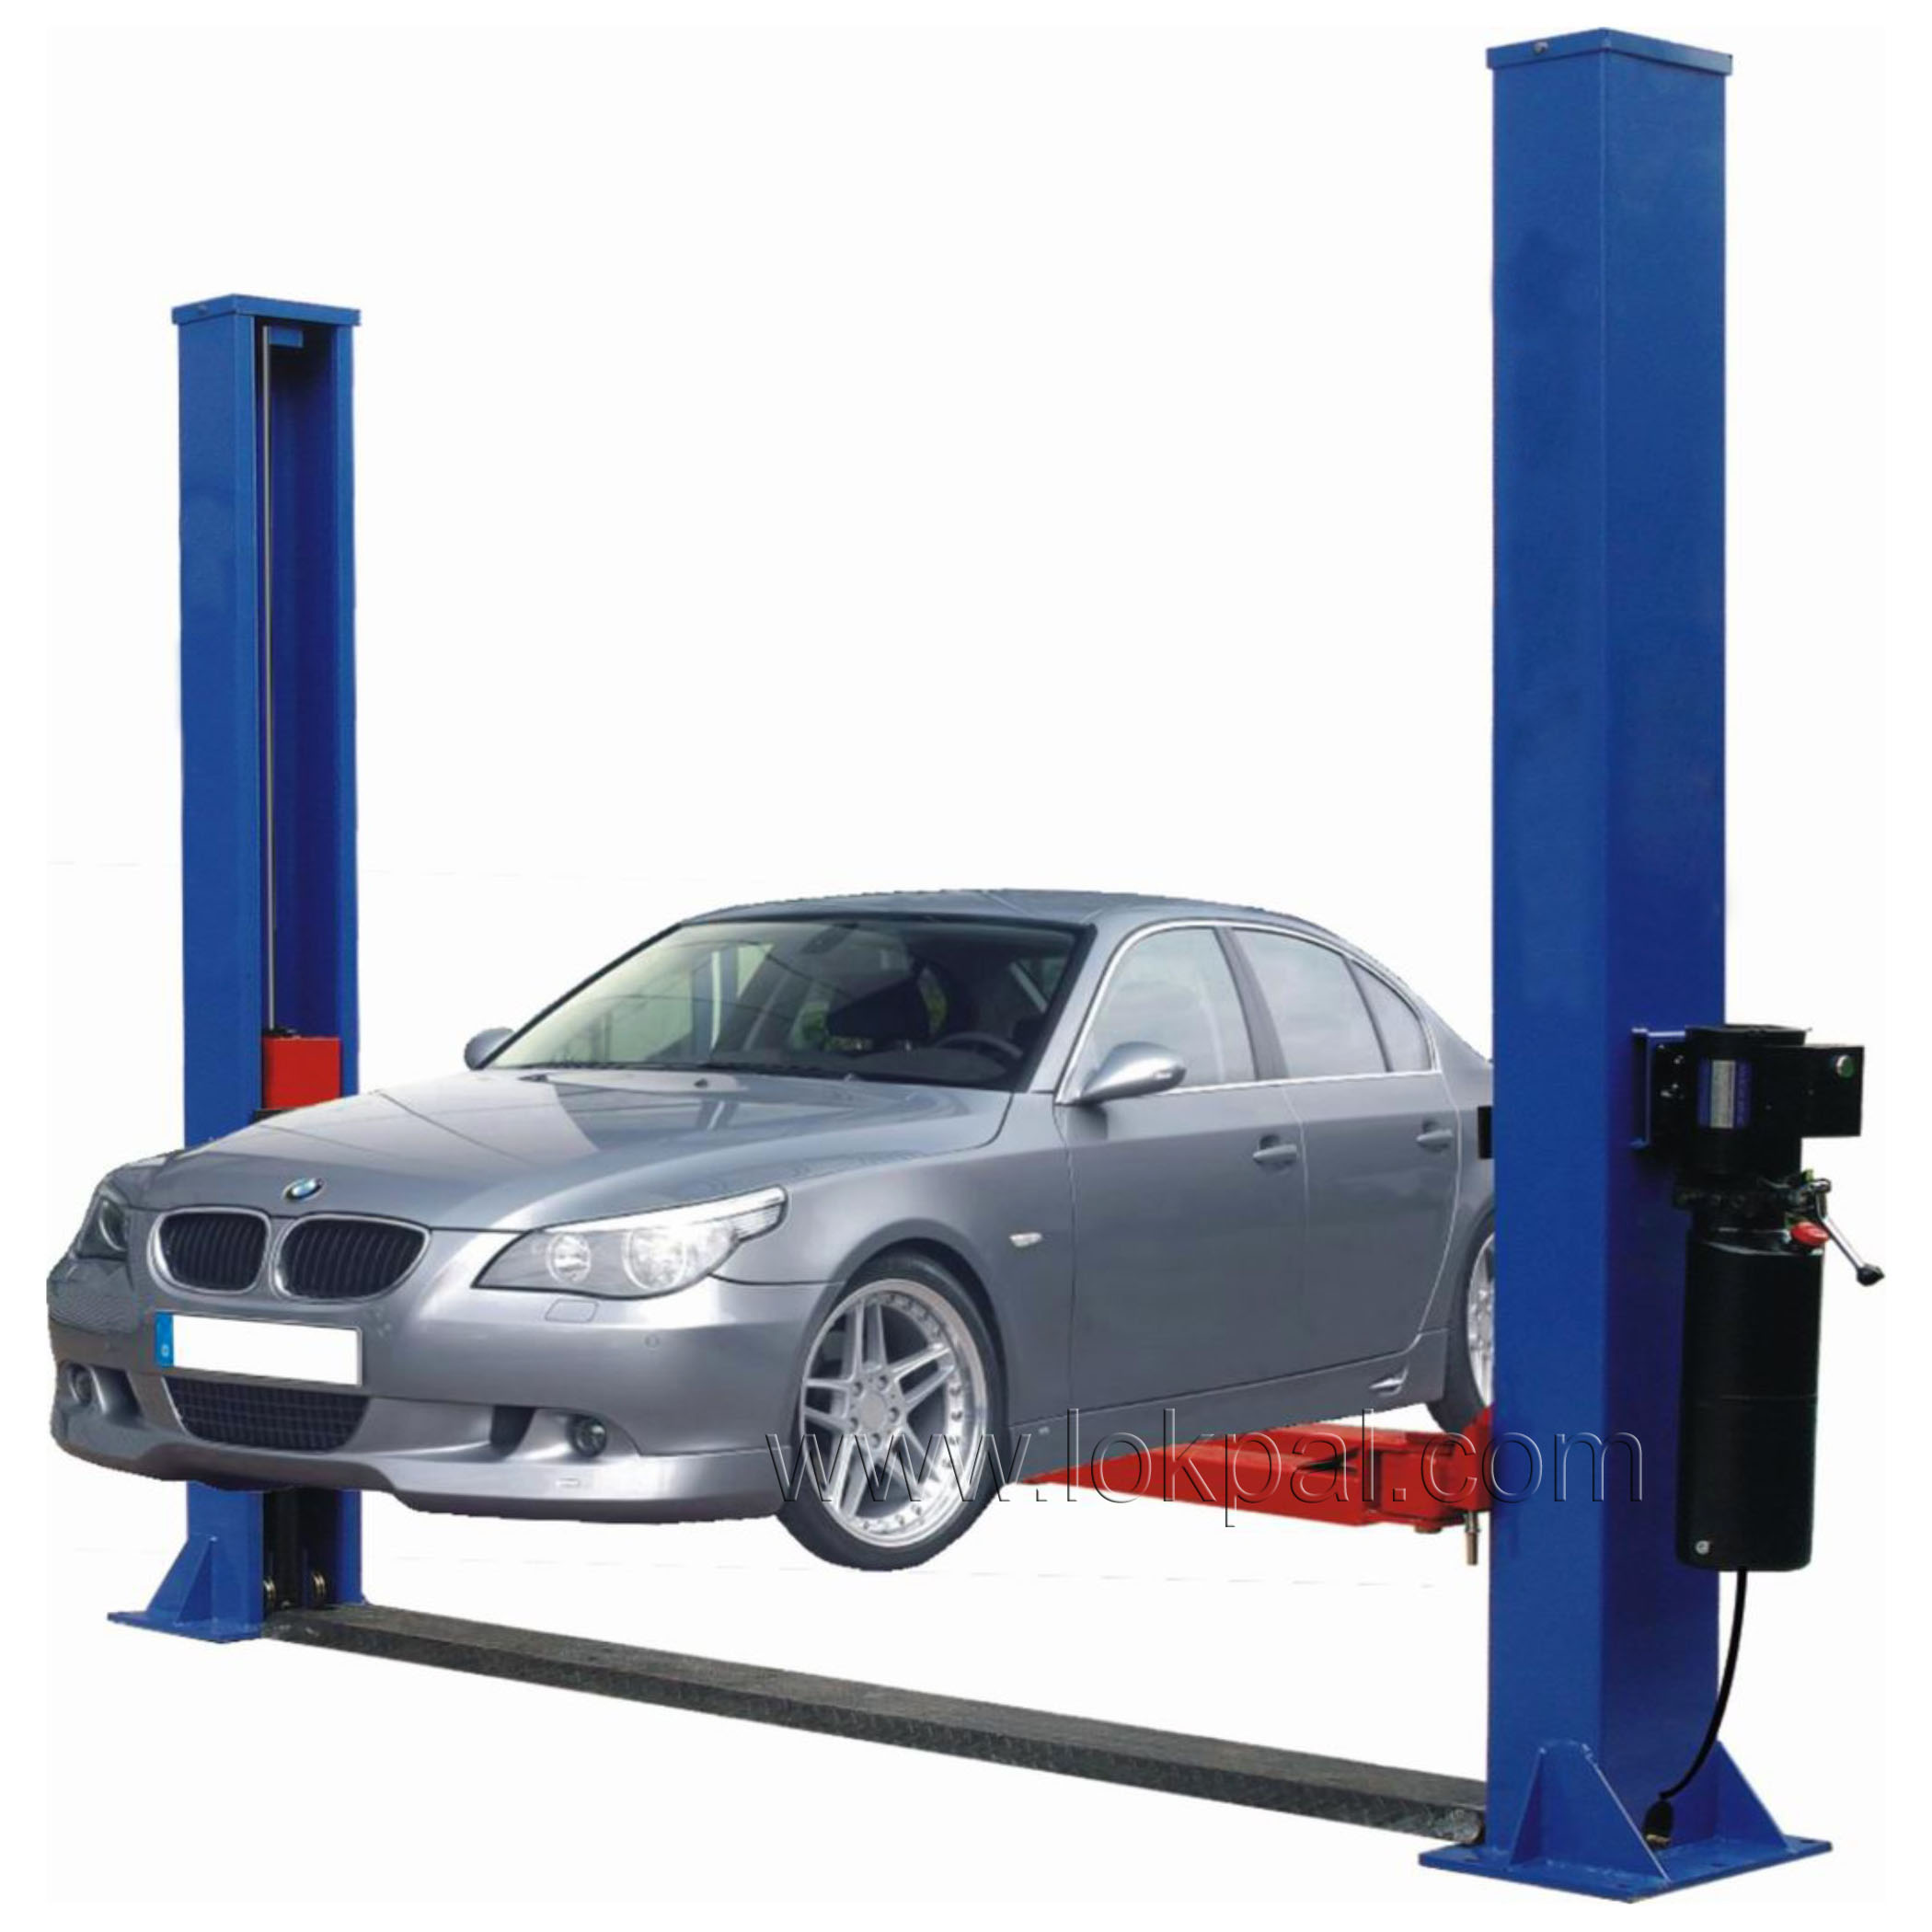 Two Post Car Lifts, Car Post Lift Manufacturer, India